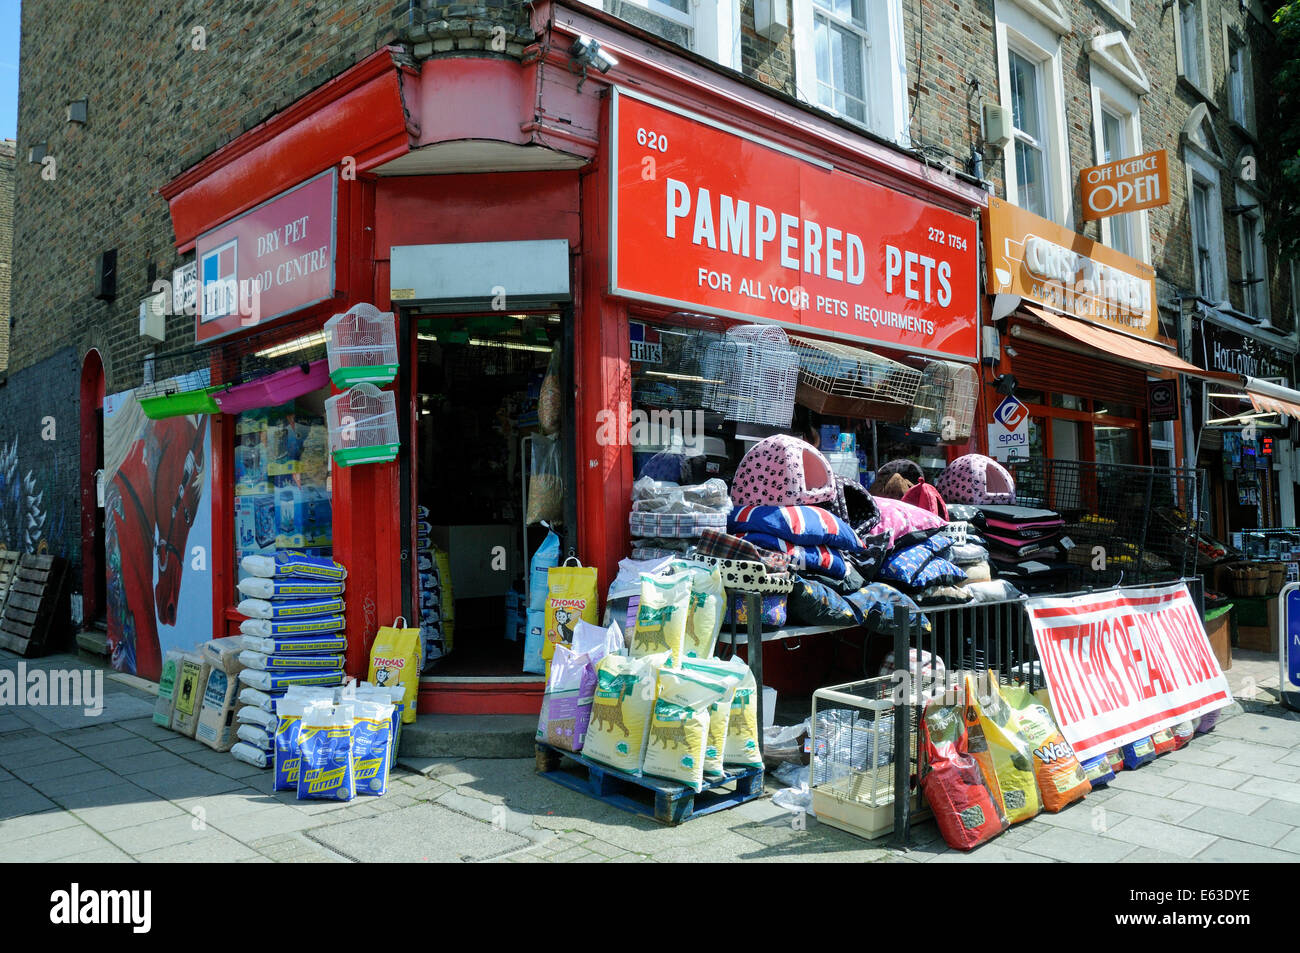 Pampered Pets pet shop, Holloway Road, London Borough of Islington England Britain UK - Stock Image